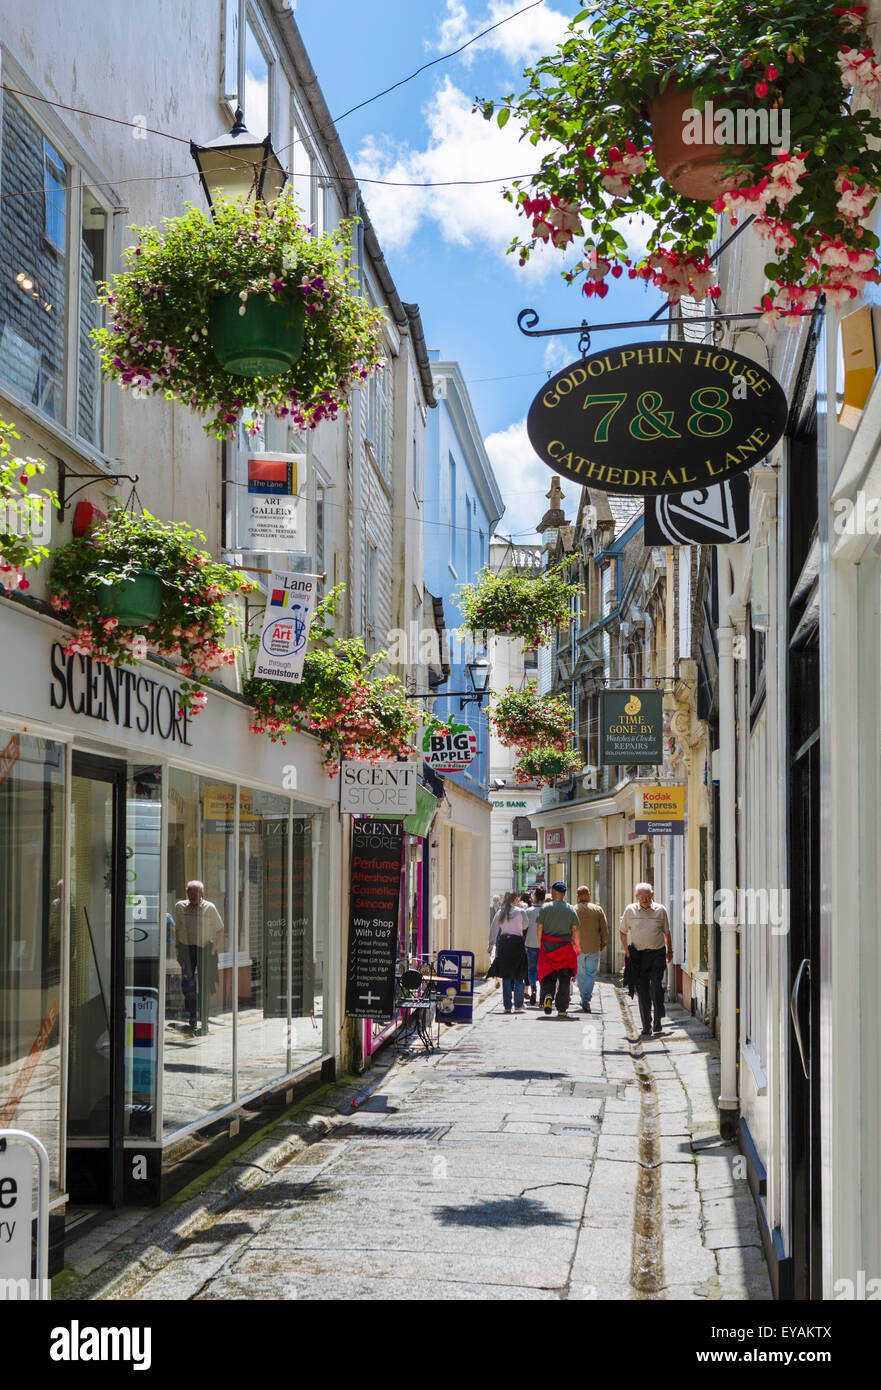 Shops on Cathedral Lane in the city centre, Truro, Cornwall, England, UK - Stock Image